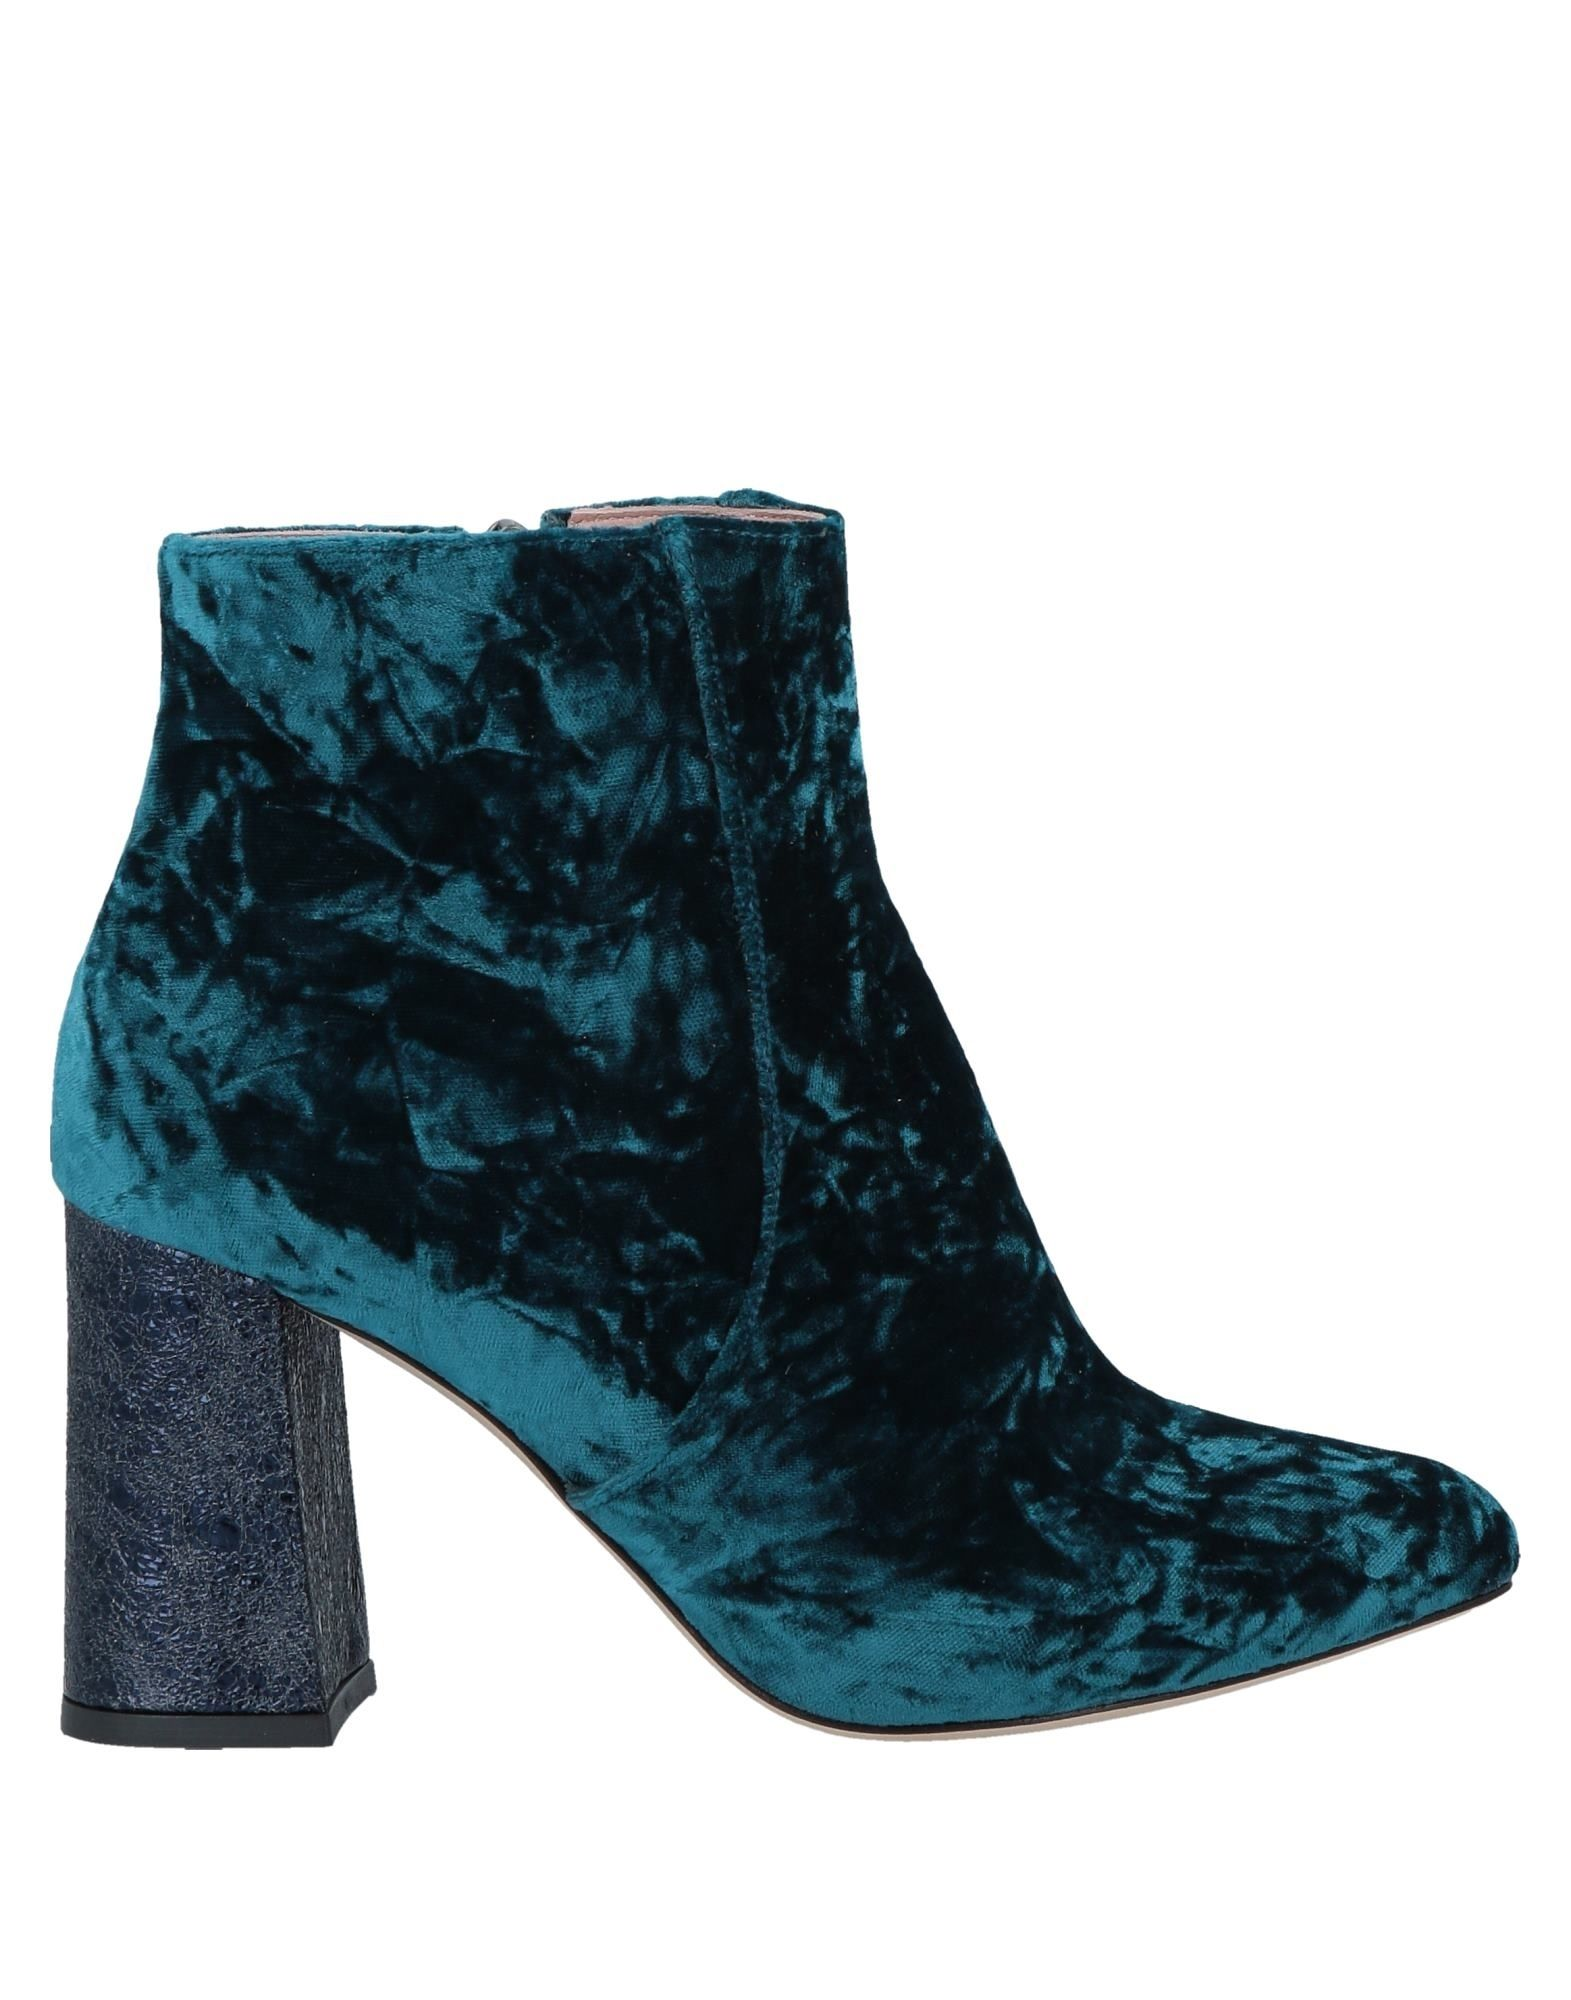 BAMS Ankle Boots in Blue